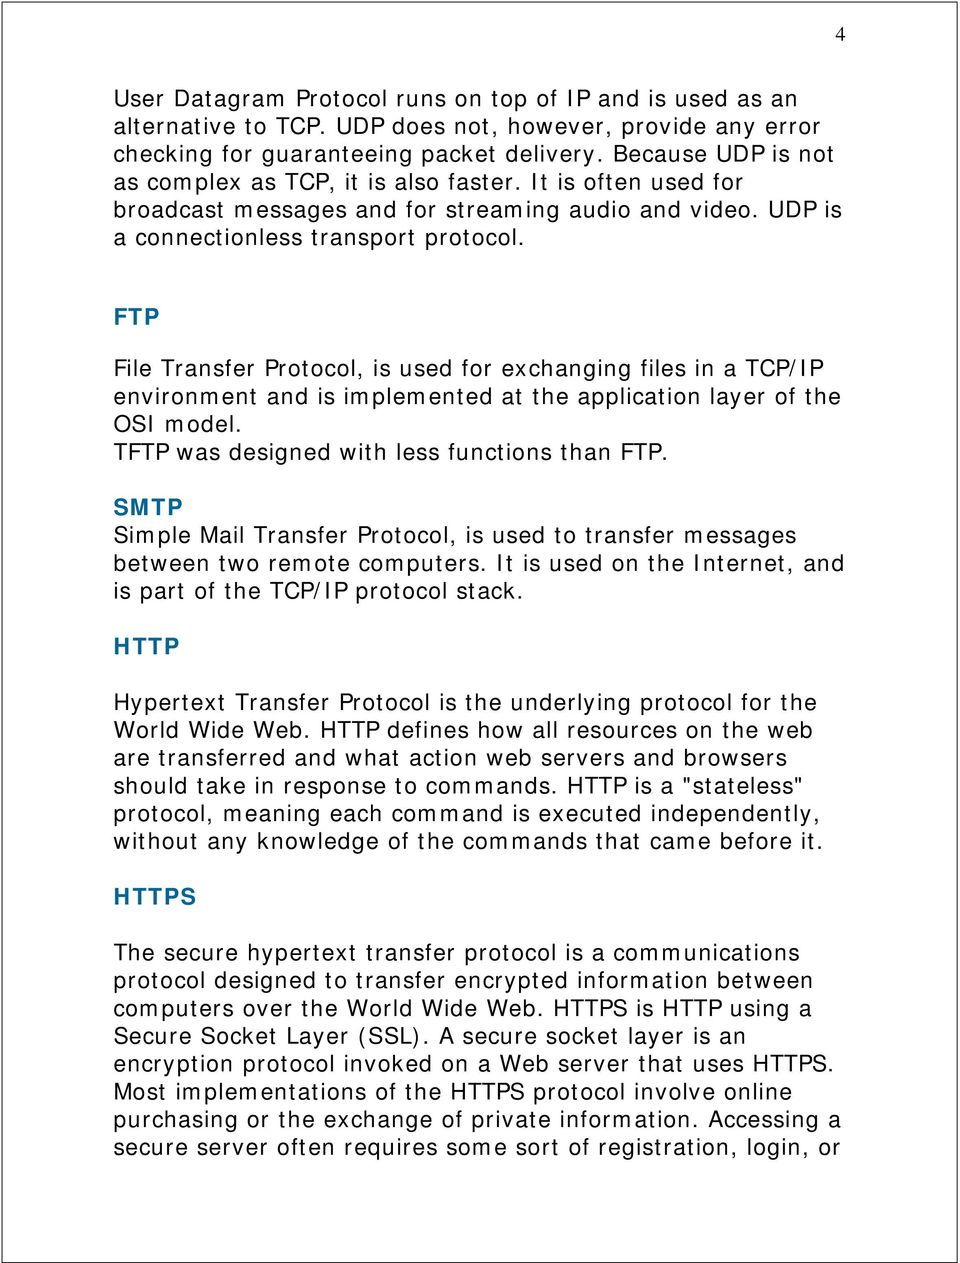 FTP File Transfer Protocol, is used for exchanging files in a TCP/IP environment and is implemented at the application layer of the OSI model. TFTP was designed with less functions than FTP.